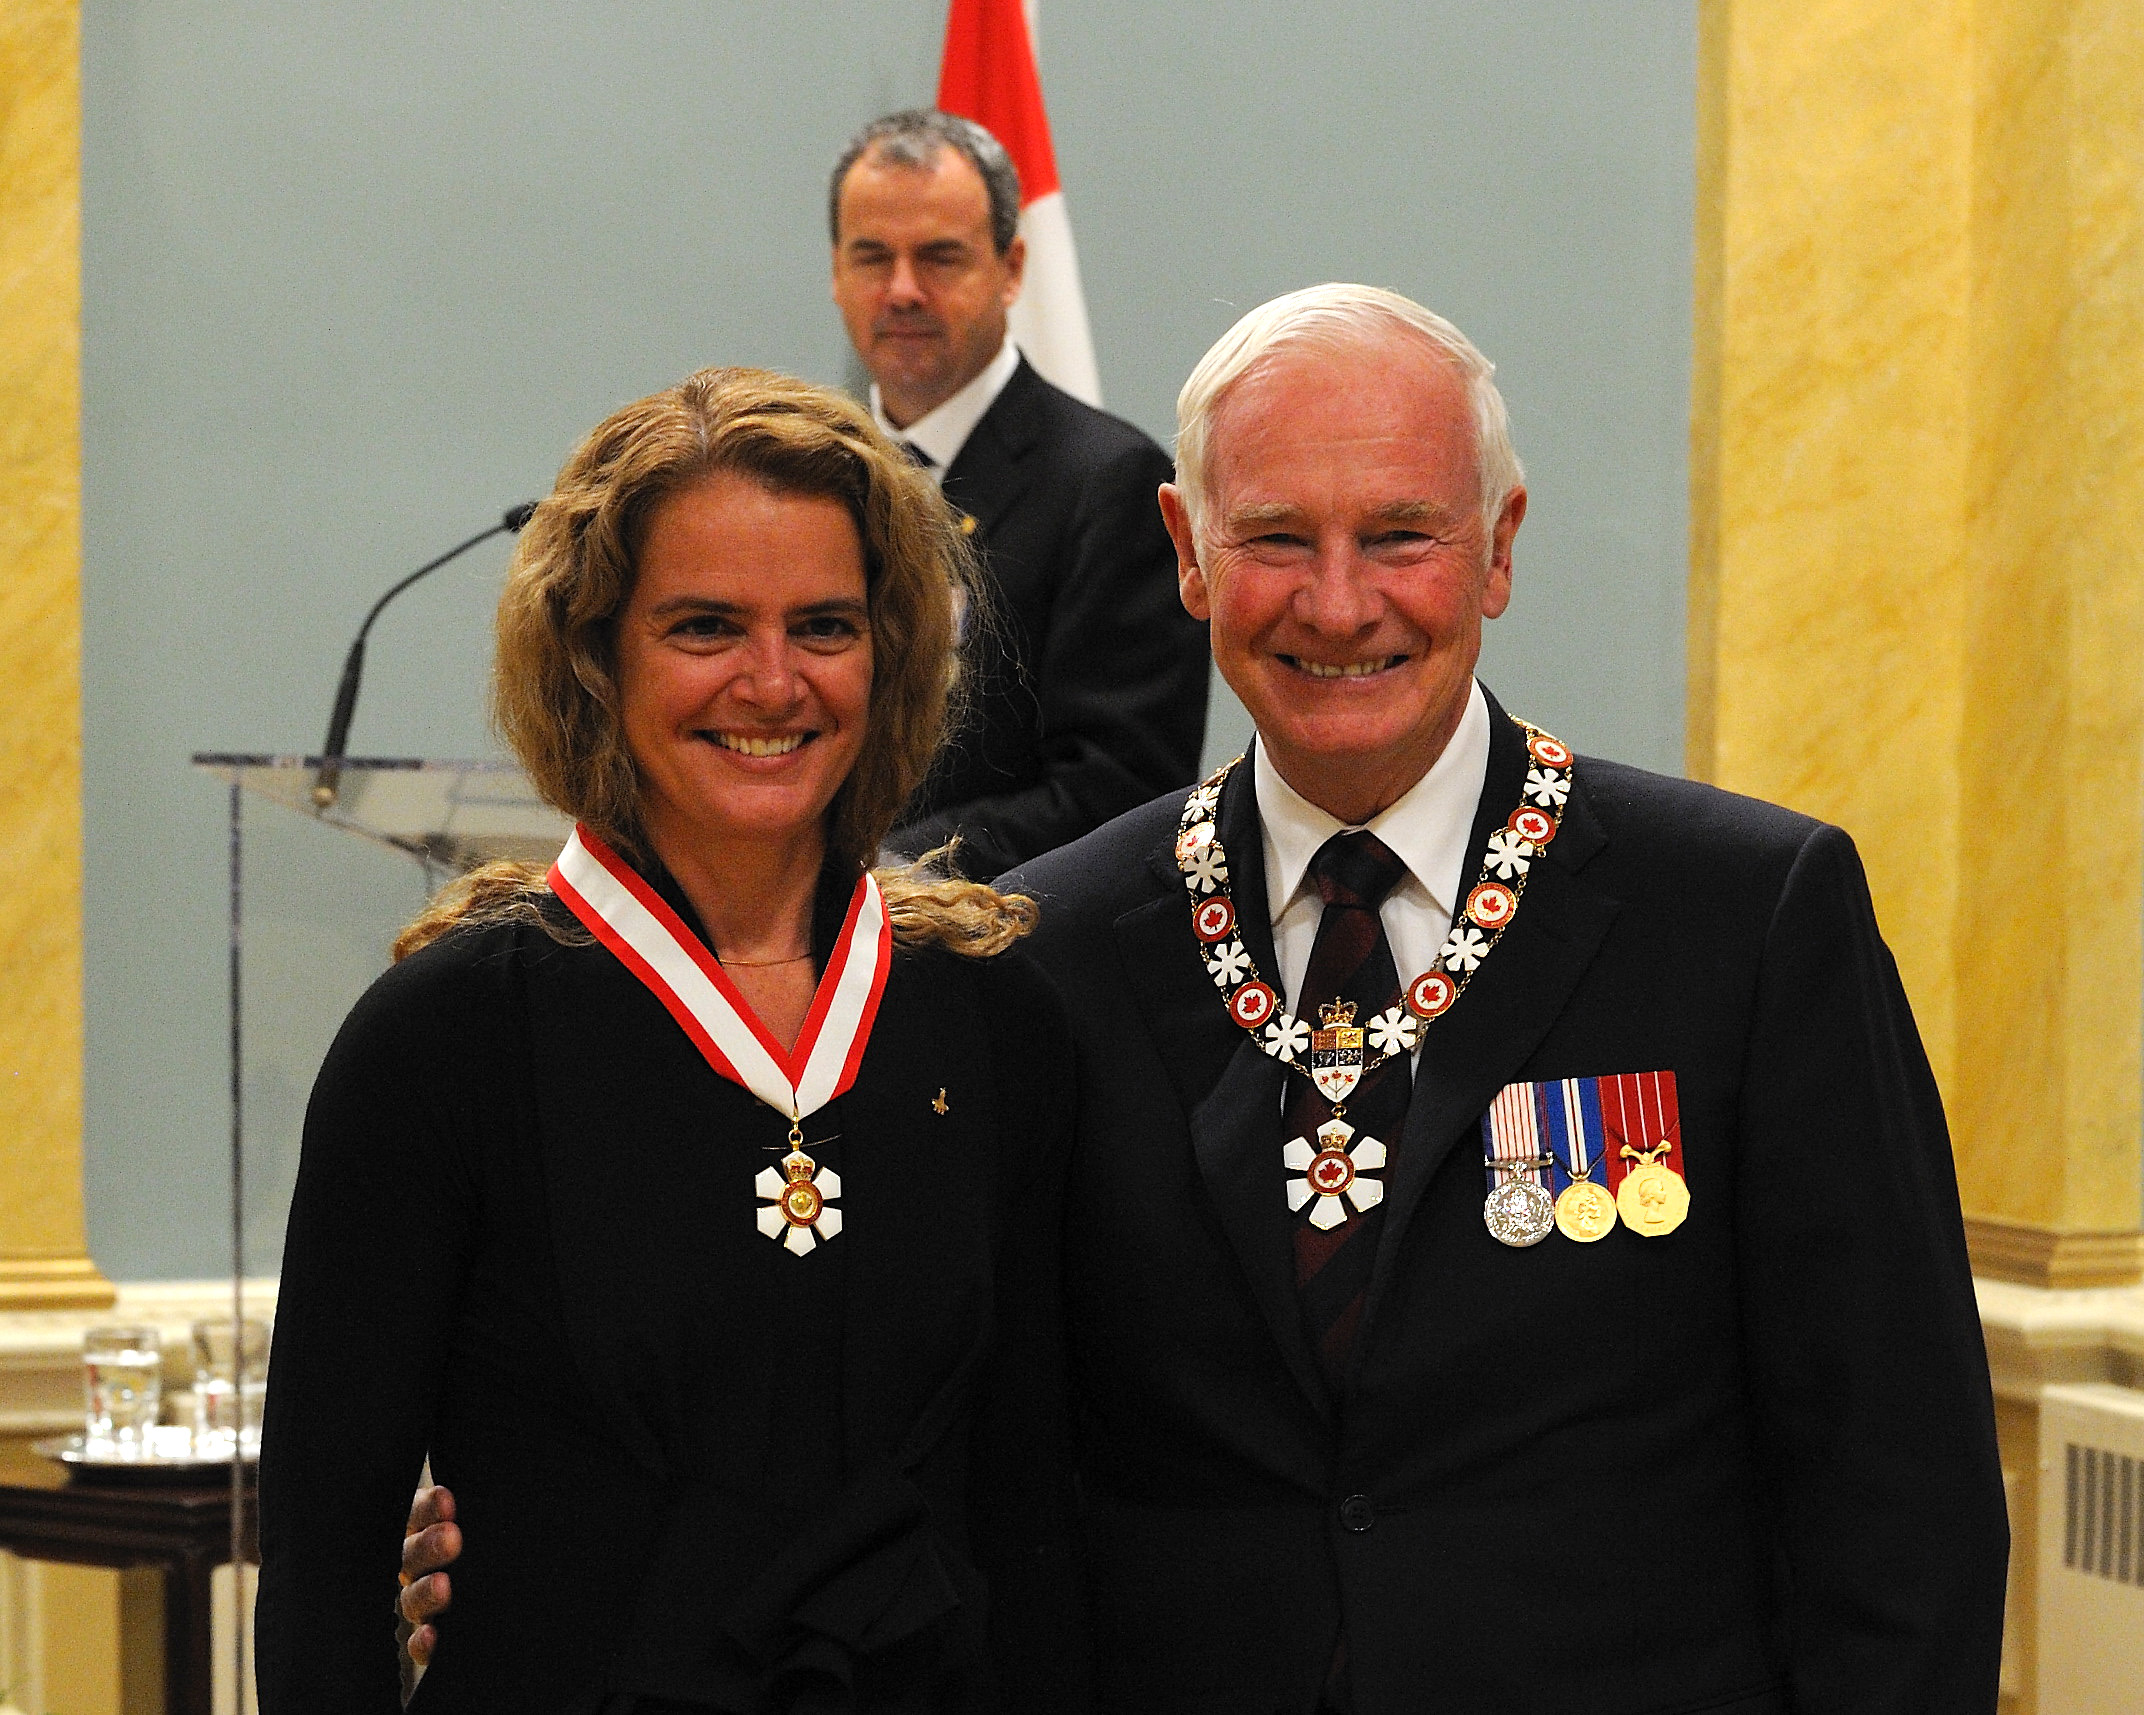 Julie Payette (Montréal, Quebec) is a source of inspiration and a remarkable international ambassador for Canadian engineering. Both an engineer and an astronaut, she has two space missions to her credit. She is the first Canadian to board the International Space Station and to take part in its assembly by operating the Canadian robotic arms. She is also the first woman to serve as lead communicator between the ground controllers at the Mission Control Center in Houston, Texas, and the astronauts in flight. She has held various positions with the Canadian Space Agency, including chief astronaut for several years. Known for her warm personality and talent as an orator, she is in demand as a speaker and is an extraordinary role model for women and young people.